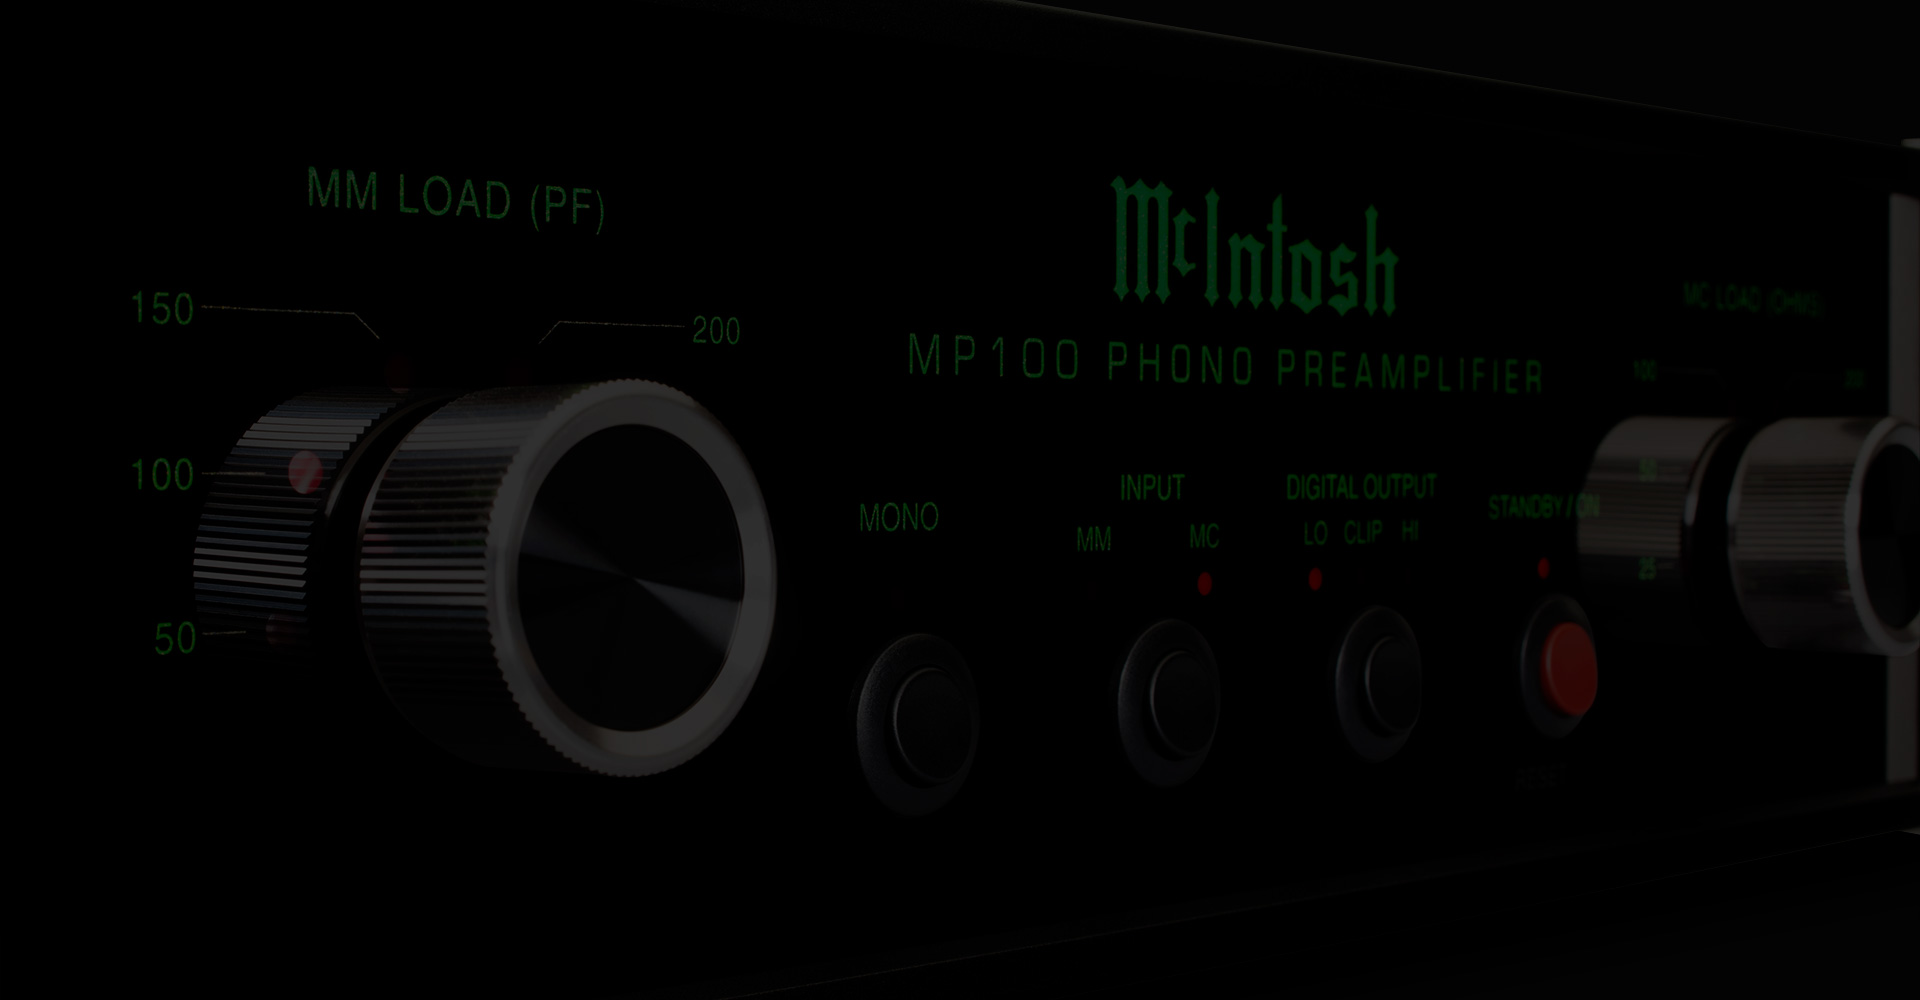 McIntosh phono preamplifiers